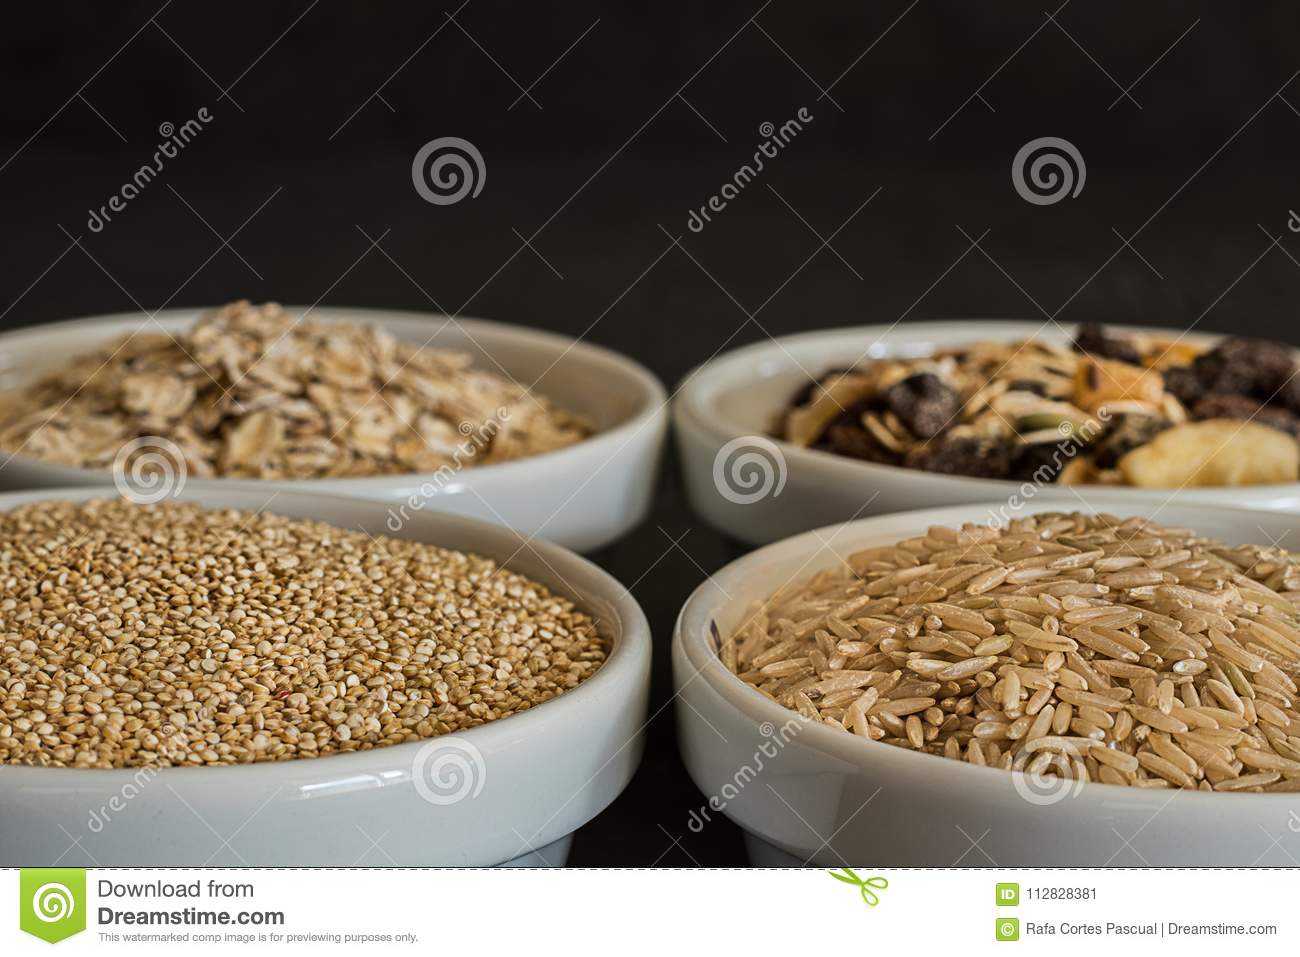 Image result for wholegraincereals